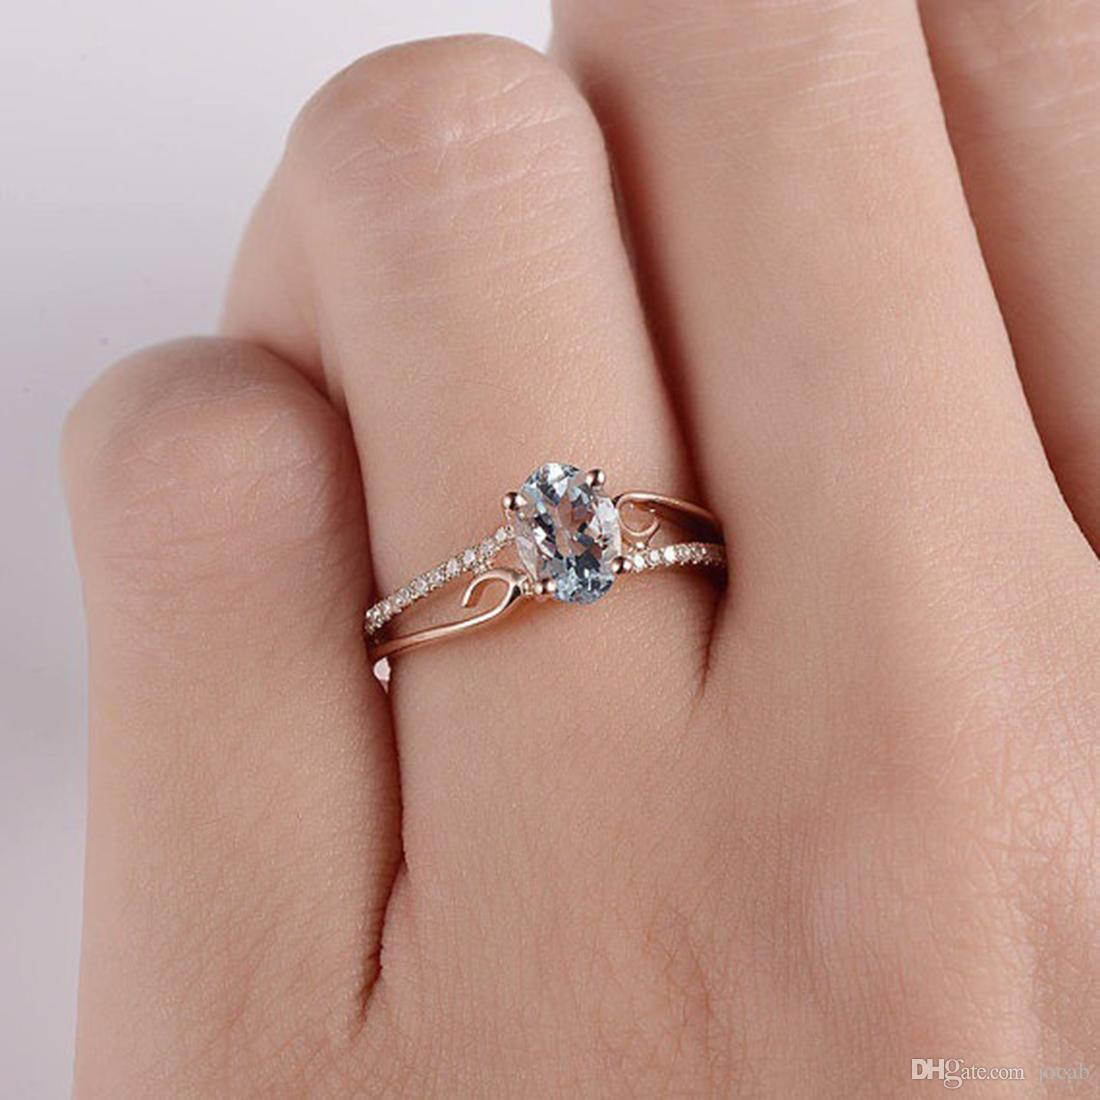 Rose Gold Wedding Ring.2019 New Blue Stone Ring Rose Gold Engagement Wedding Rings For Women Fashion Jewelry Rings Gifts